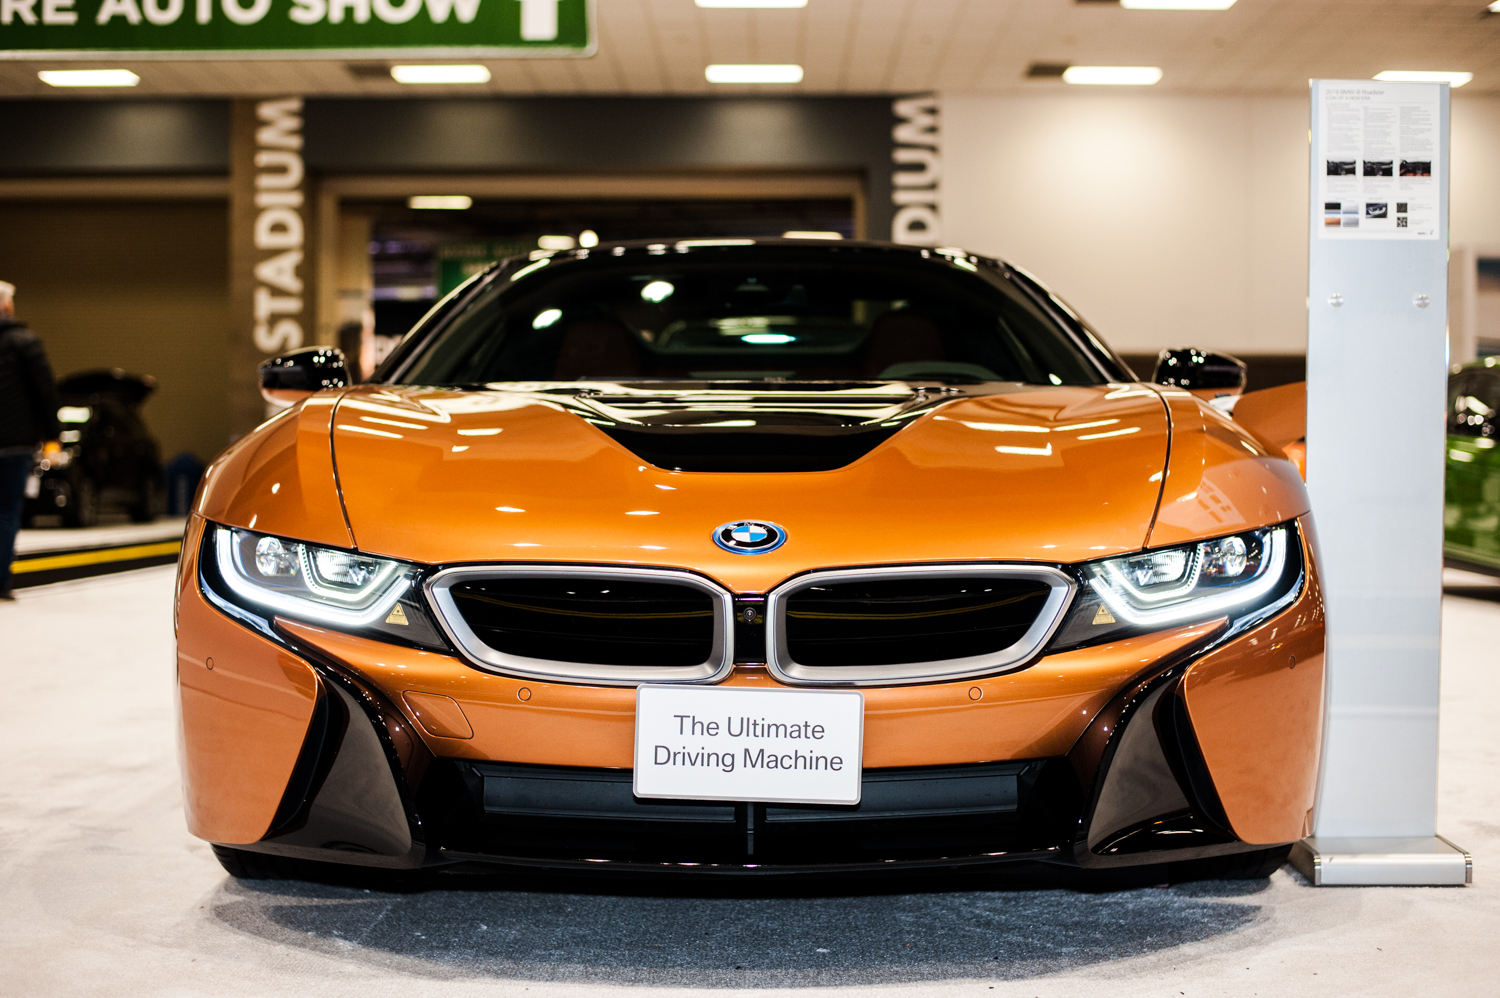 BMW i8 Roadster - $163,300+. The Seattle International Auto Show{ }showcases all that's new in cars, trucks, exotics, super cars, electrics and all the latest models from the world's automobile makers. We scoured the place for the most expensive vehicles we could find - and aye caramba - some of these are literally the cars of our dreams. The Auto Show runs Nov. 9-12, 2018 at CenturyLink Field Event Center. (Image: Elizabeth Crook / Seattle Refined)